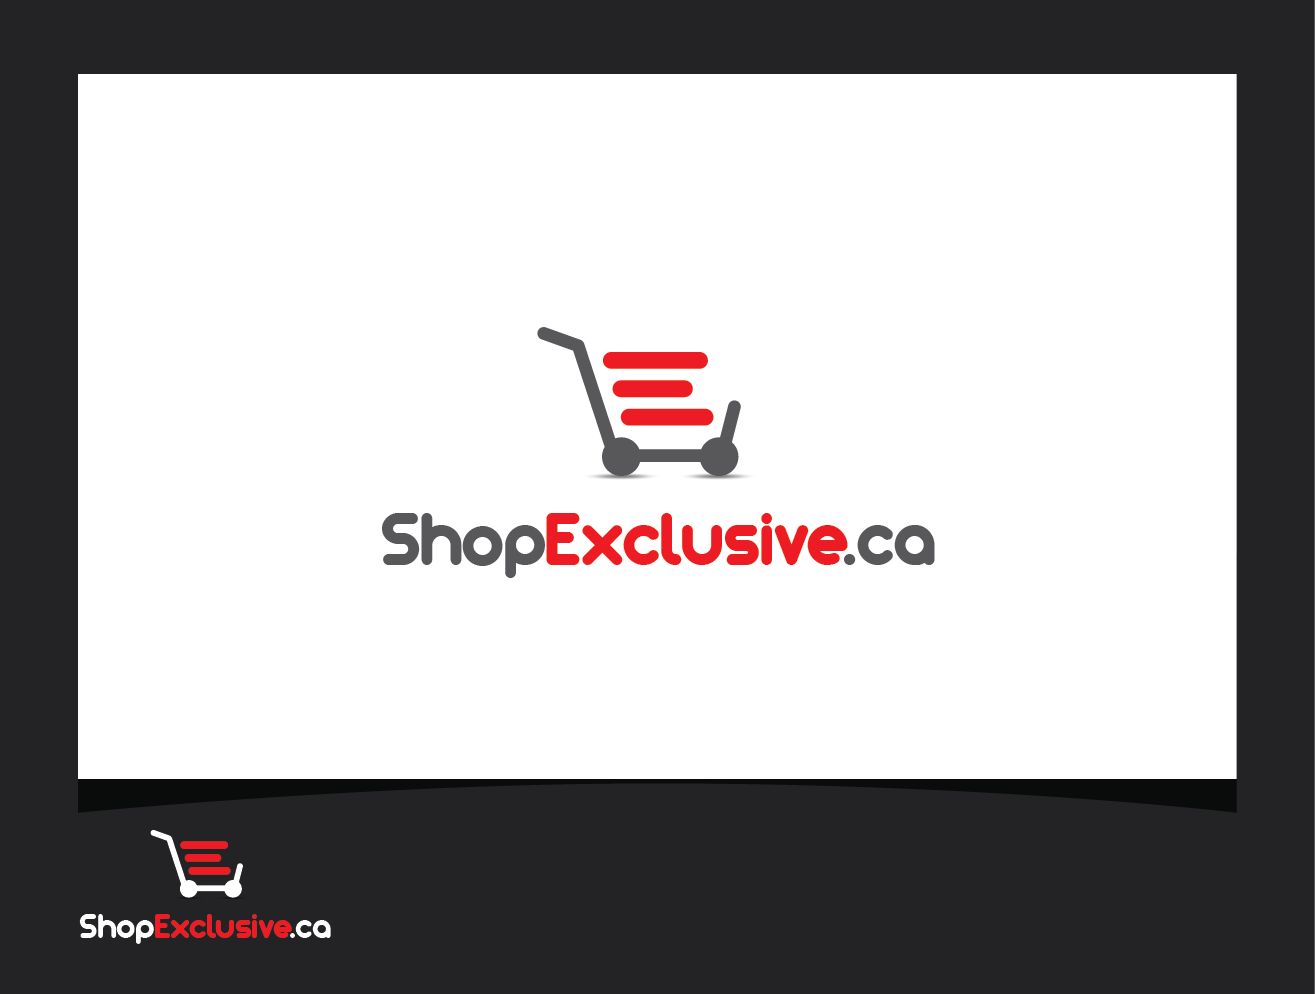 Logo Design by shariq_ssa - Entry No. 161 in the Logo Design Contest Logo Design needed for branding exciting new company:  ShopExclusive.ca.